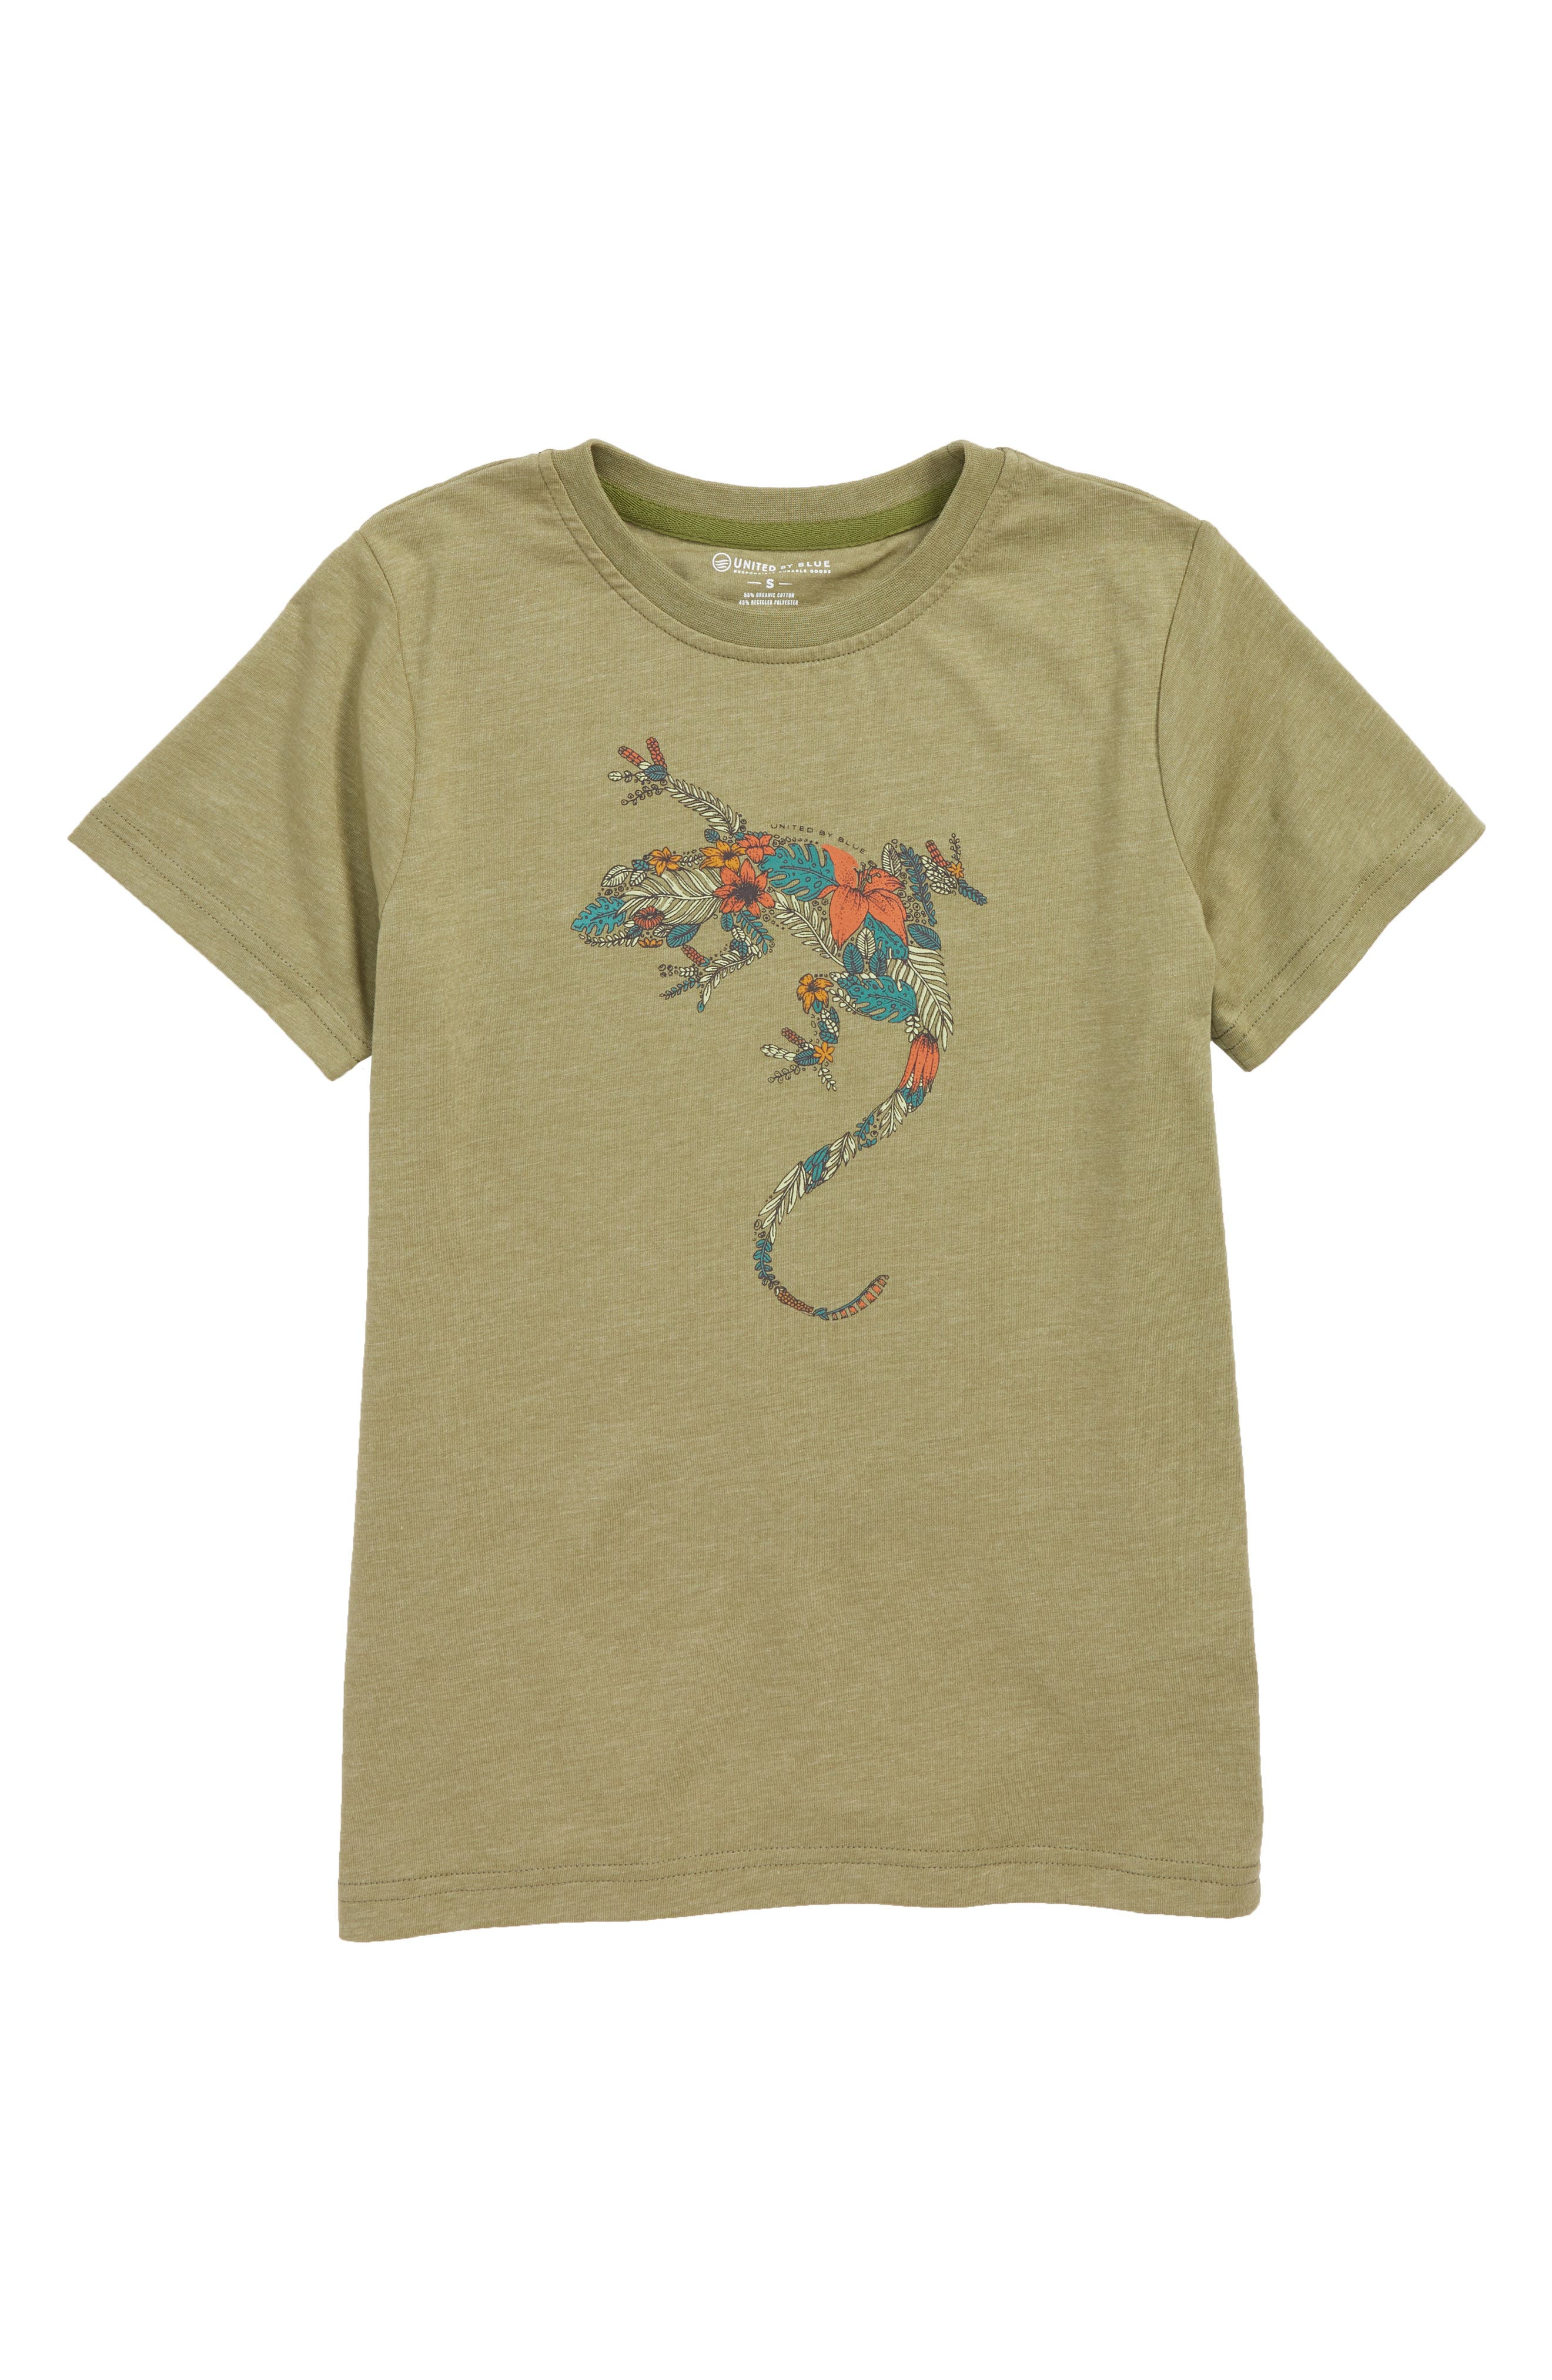 Wild Gecko Graphic T-Shirt,                             Main thumbnail 1, color,                             300